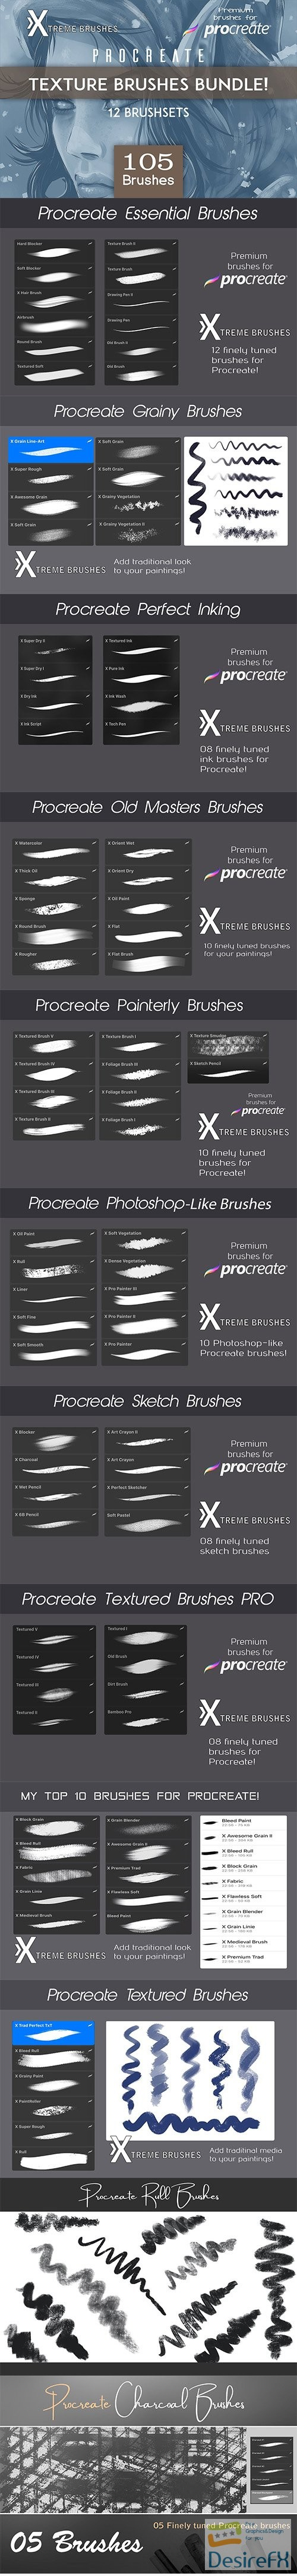 photoshop - CreativeMarket - Procreate Texture Brushes BUNDLE 3480564